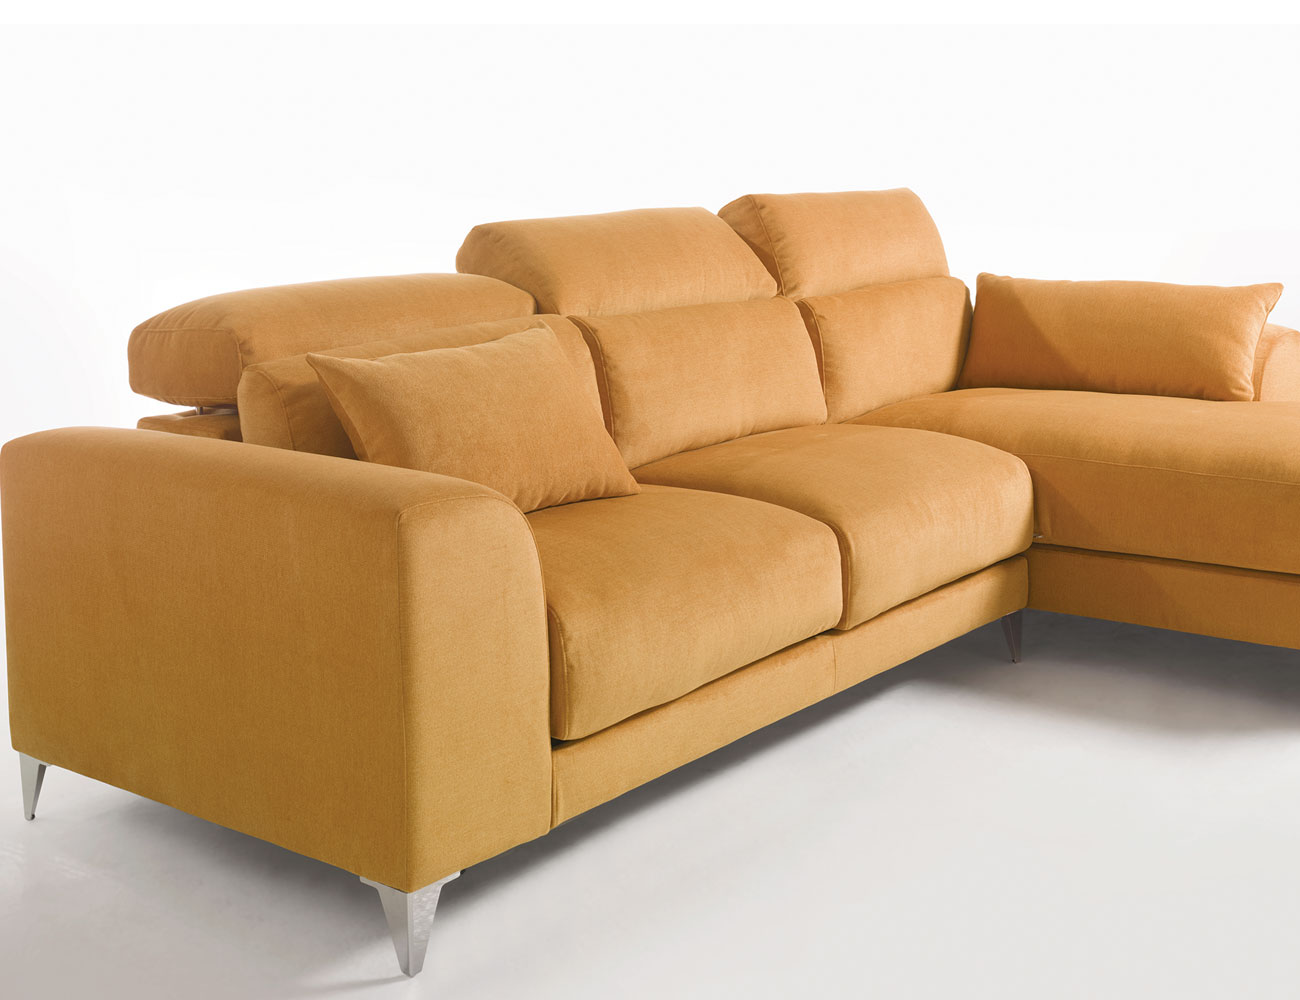 Sofa chaiselongue gran lujo decorativo patas altas amarillo 210